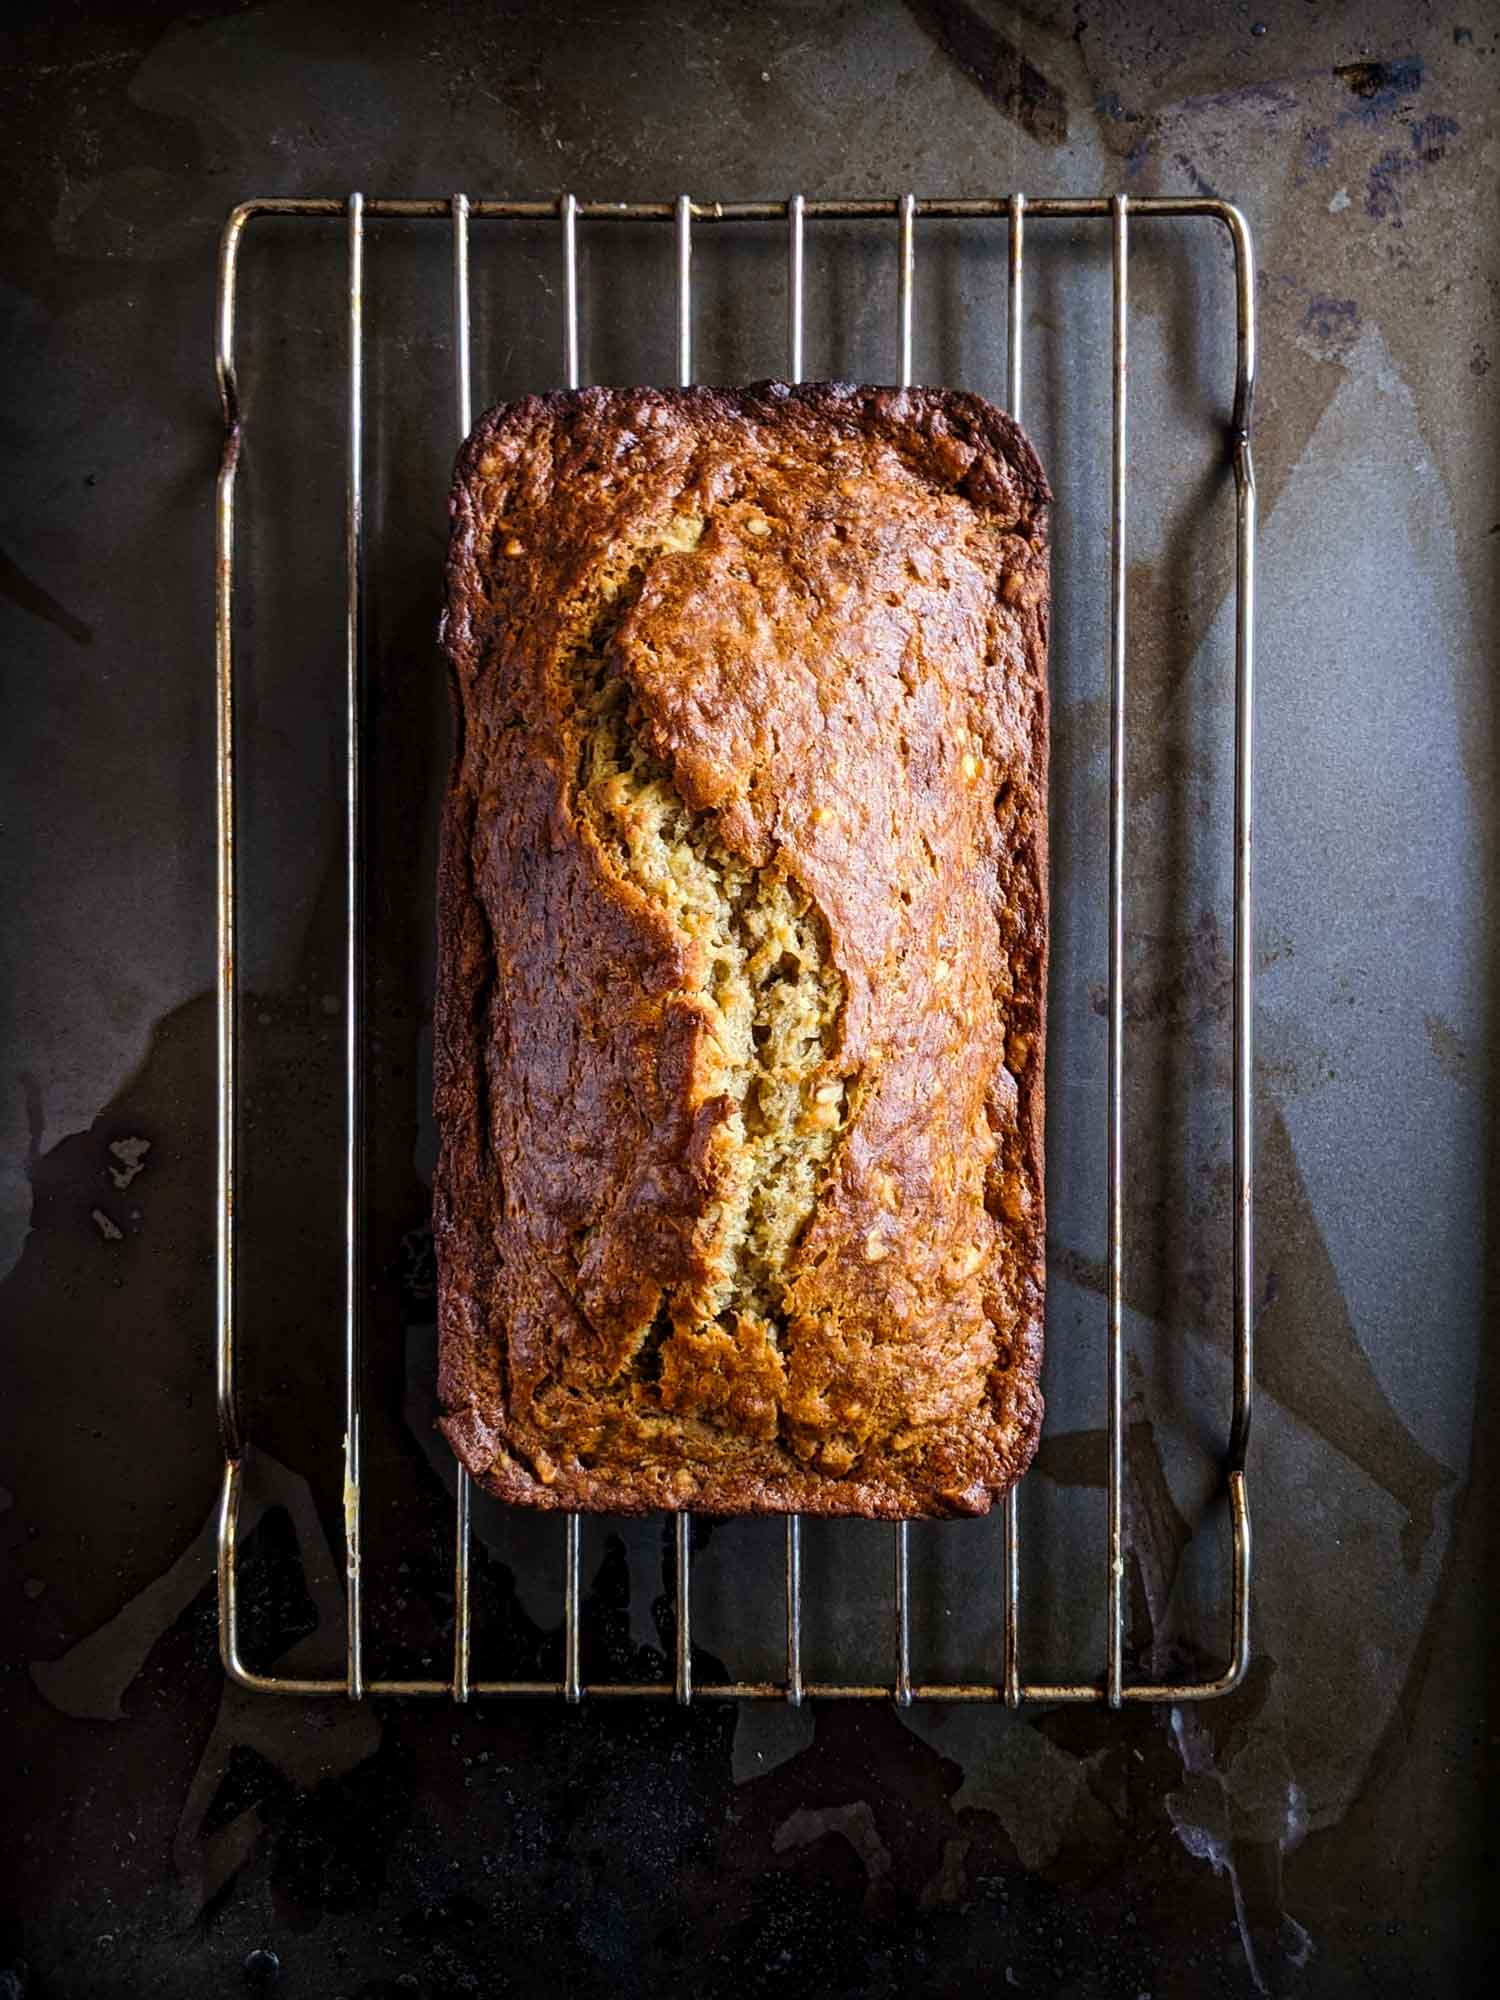 Classic banana bread recipe cooling on a wire rack